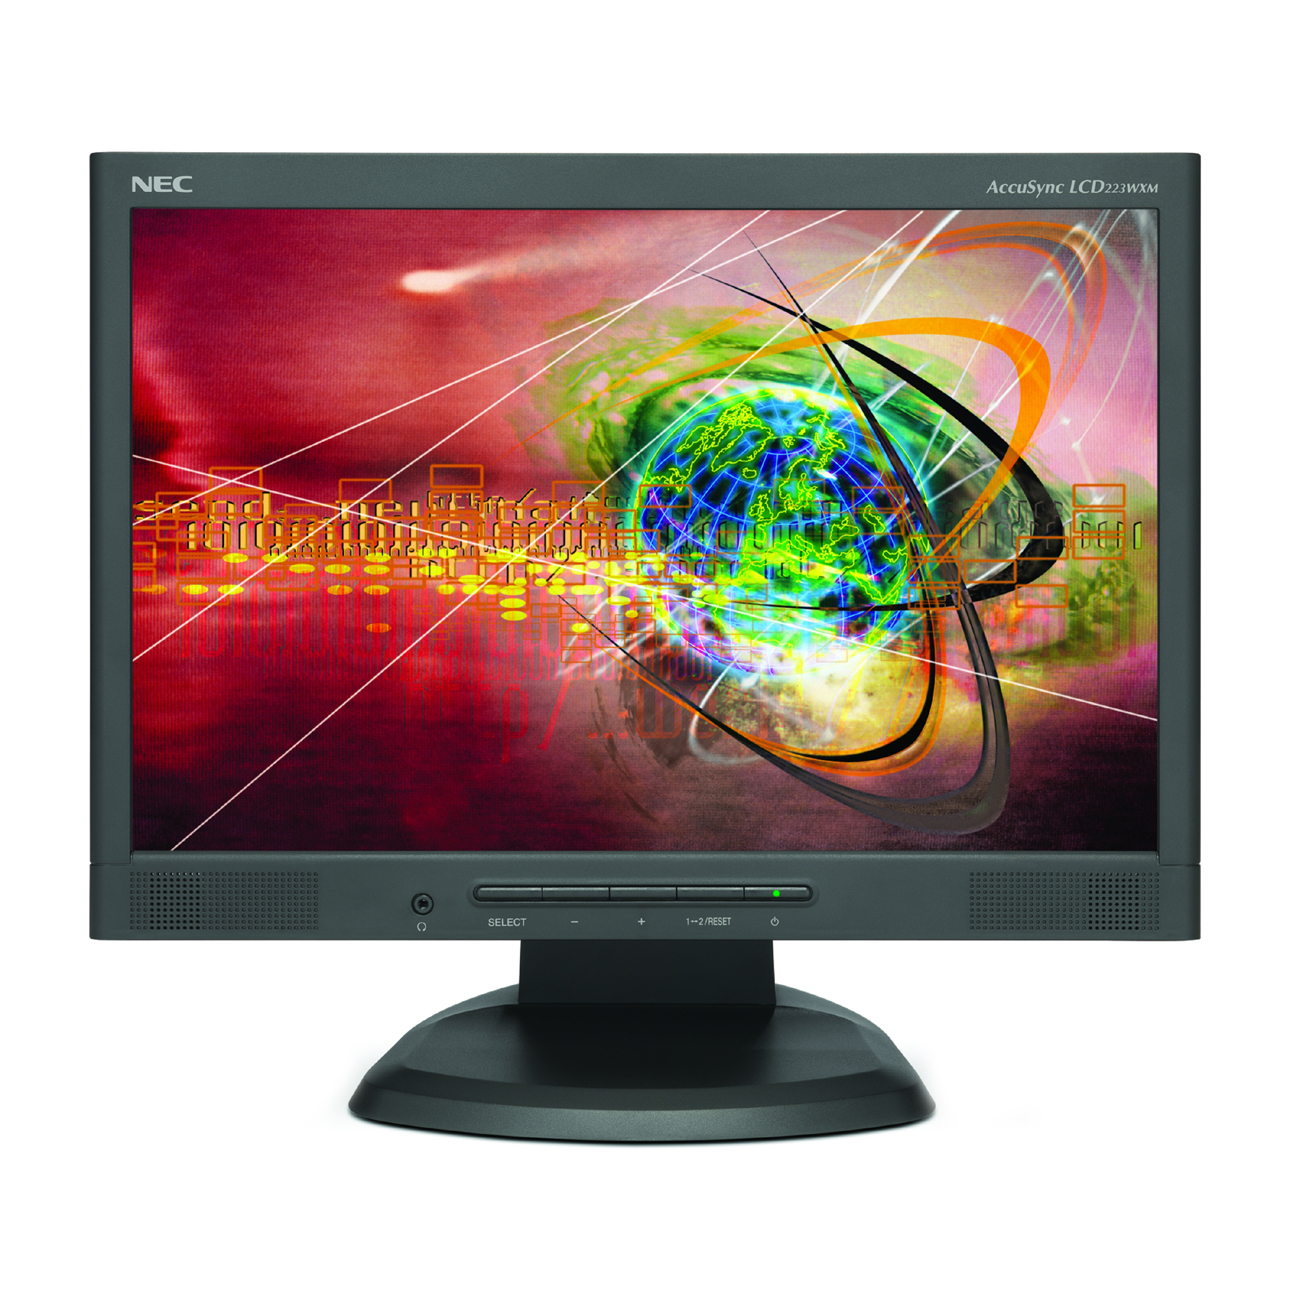 NEC AccuSync LCD193WXM 19 LCD Monitor with built-in speakers